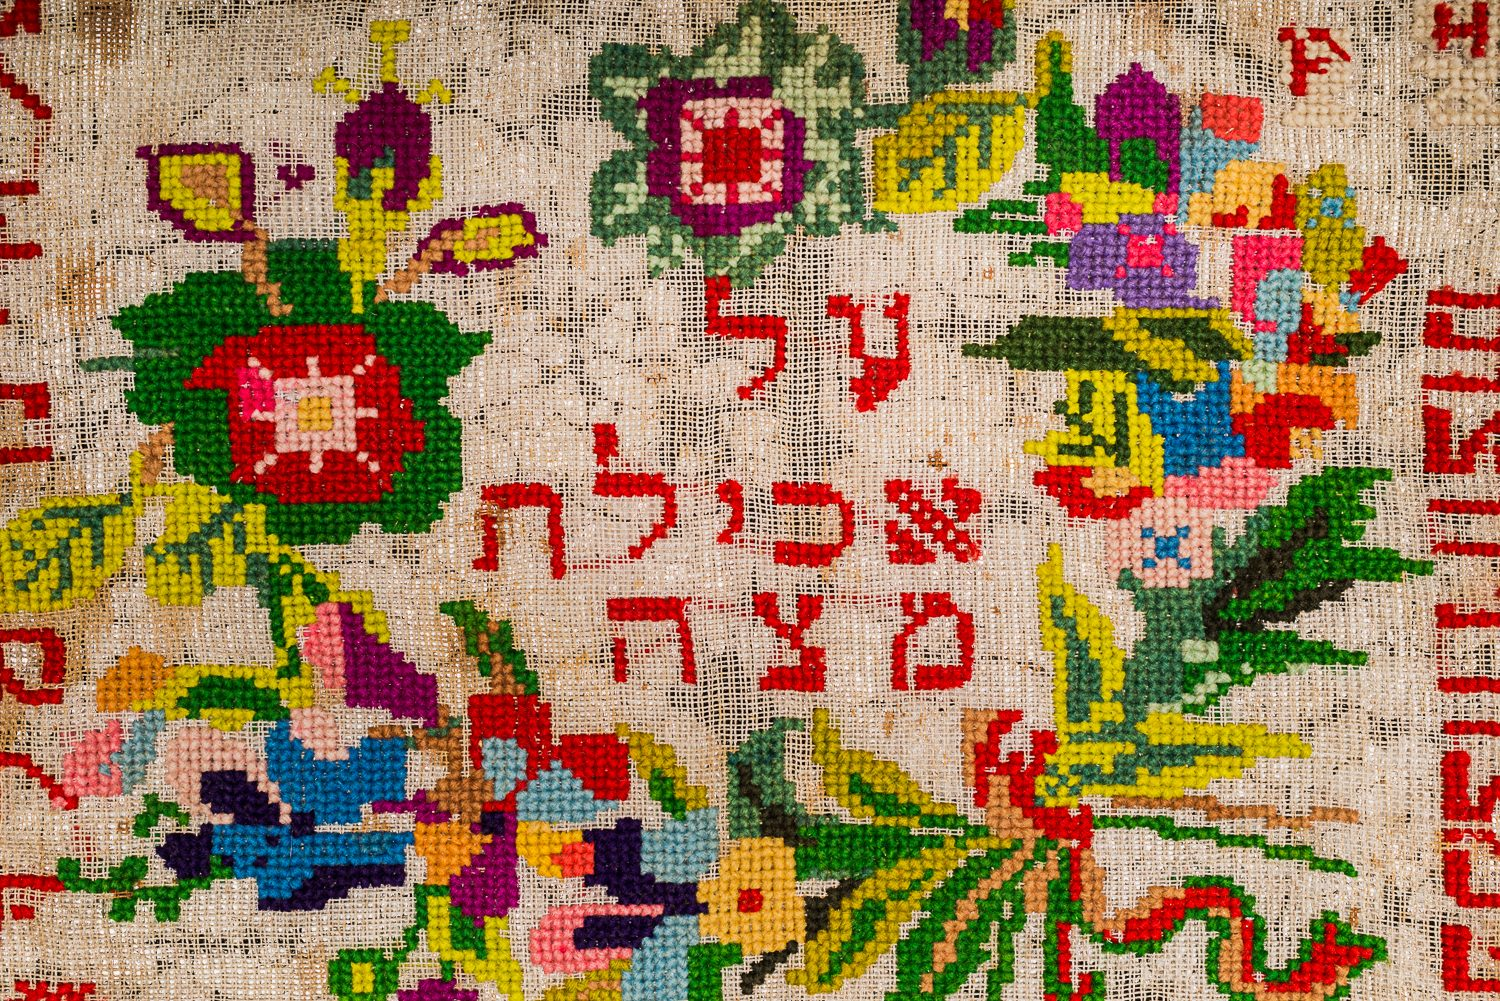 This matzah cover is embroidered with colourful flowers and Hebrew inscriptions. (Photo: Peter Berra)